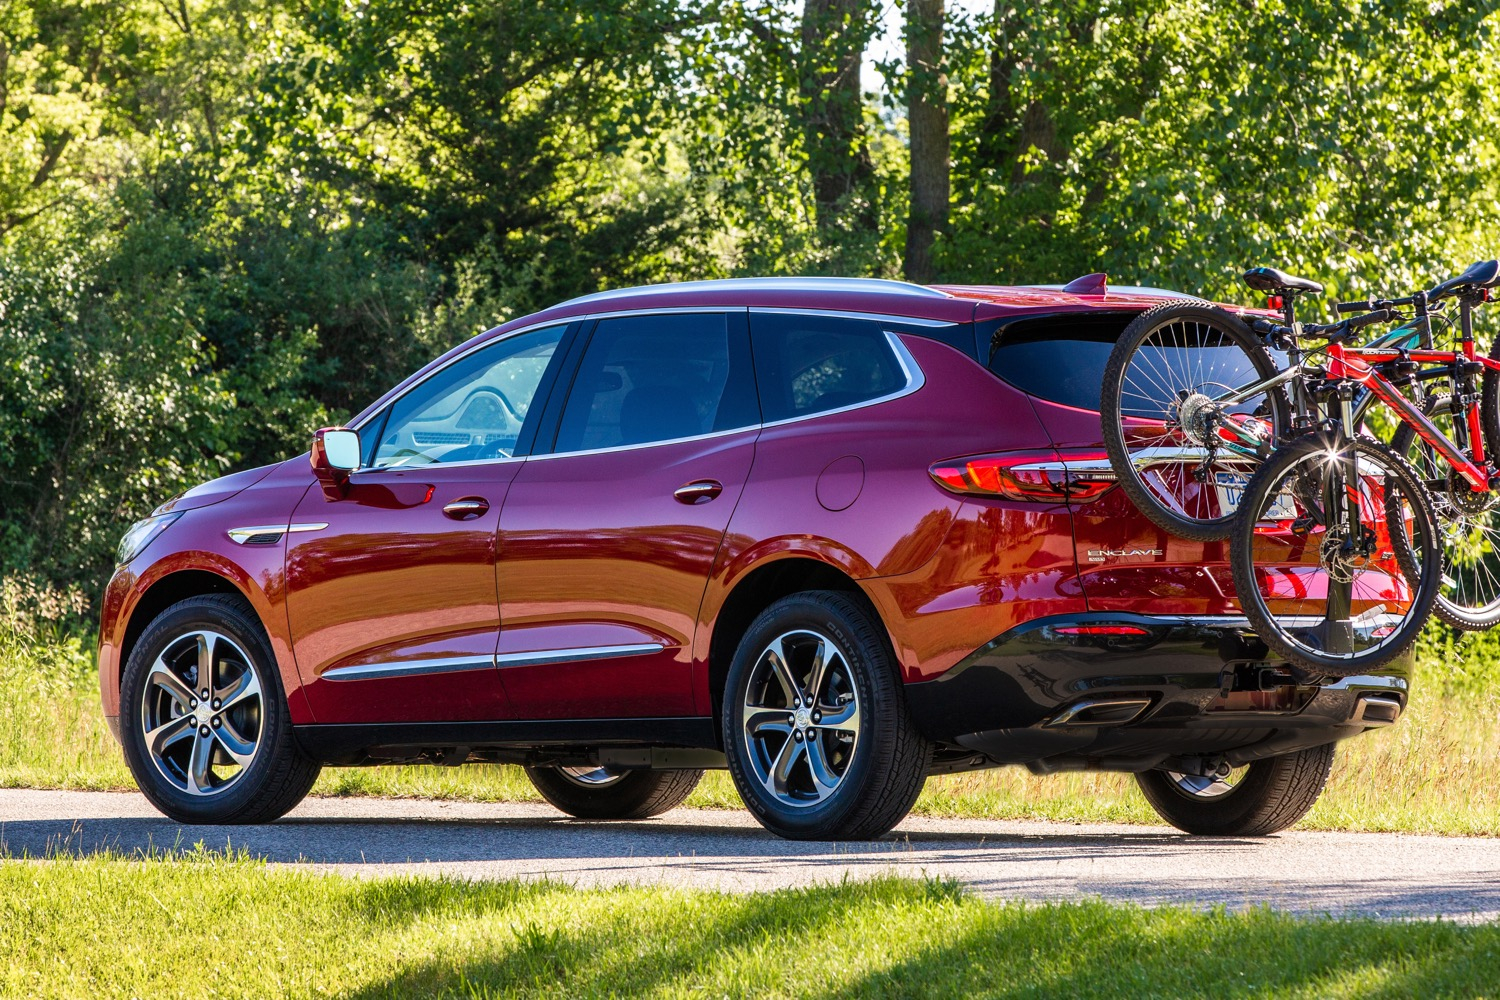 All The Changes Made To The 2020 Buick Enclave   Gm Authority New 2022 Buick Enclave Engine, Navigation, Navigation System